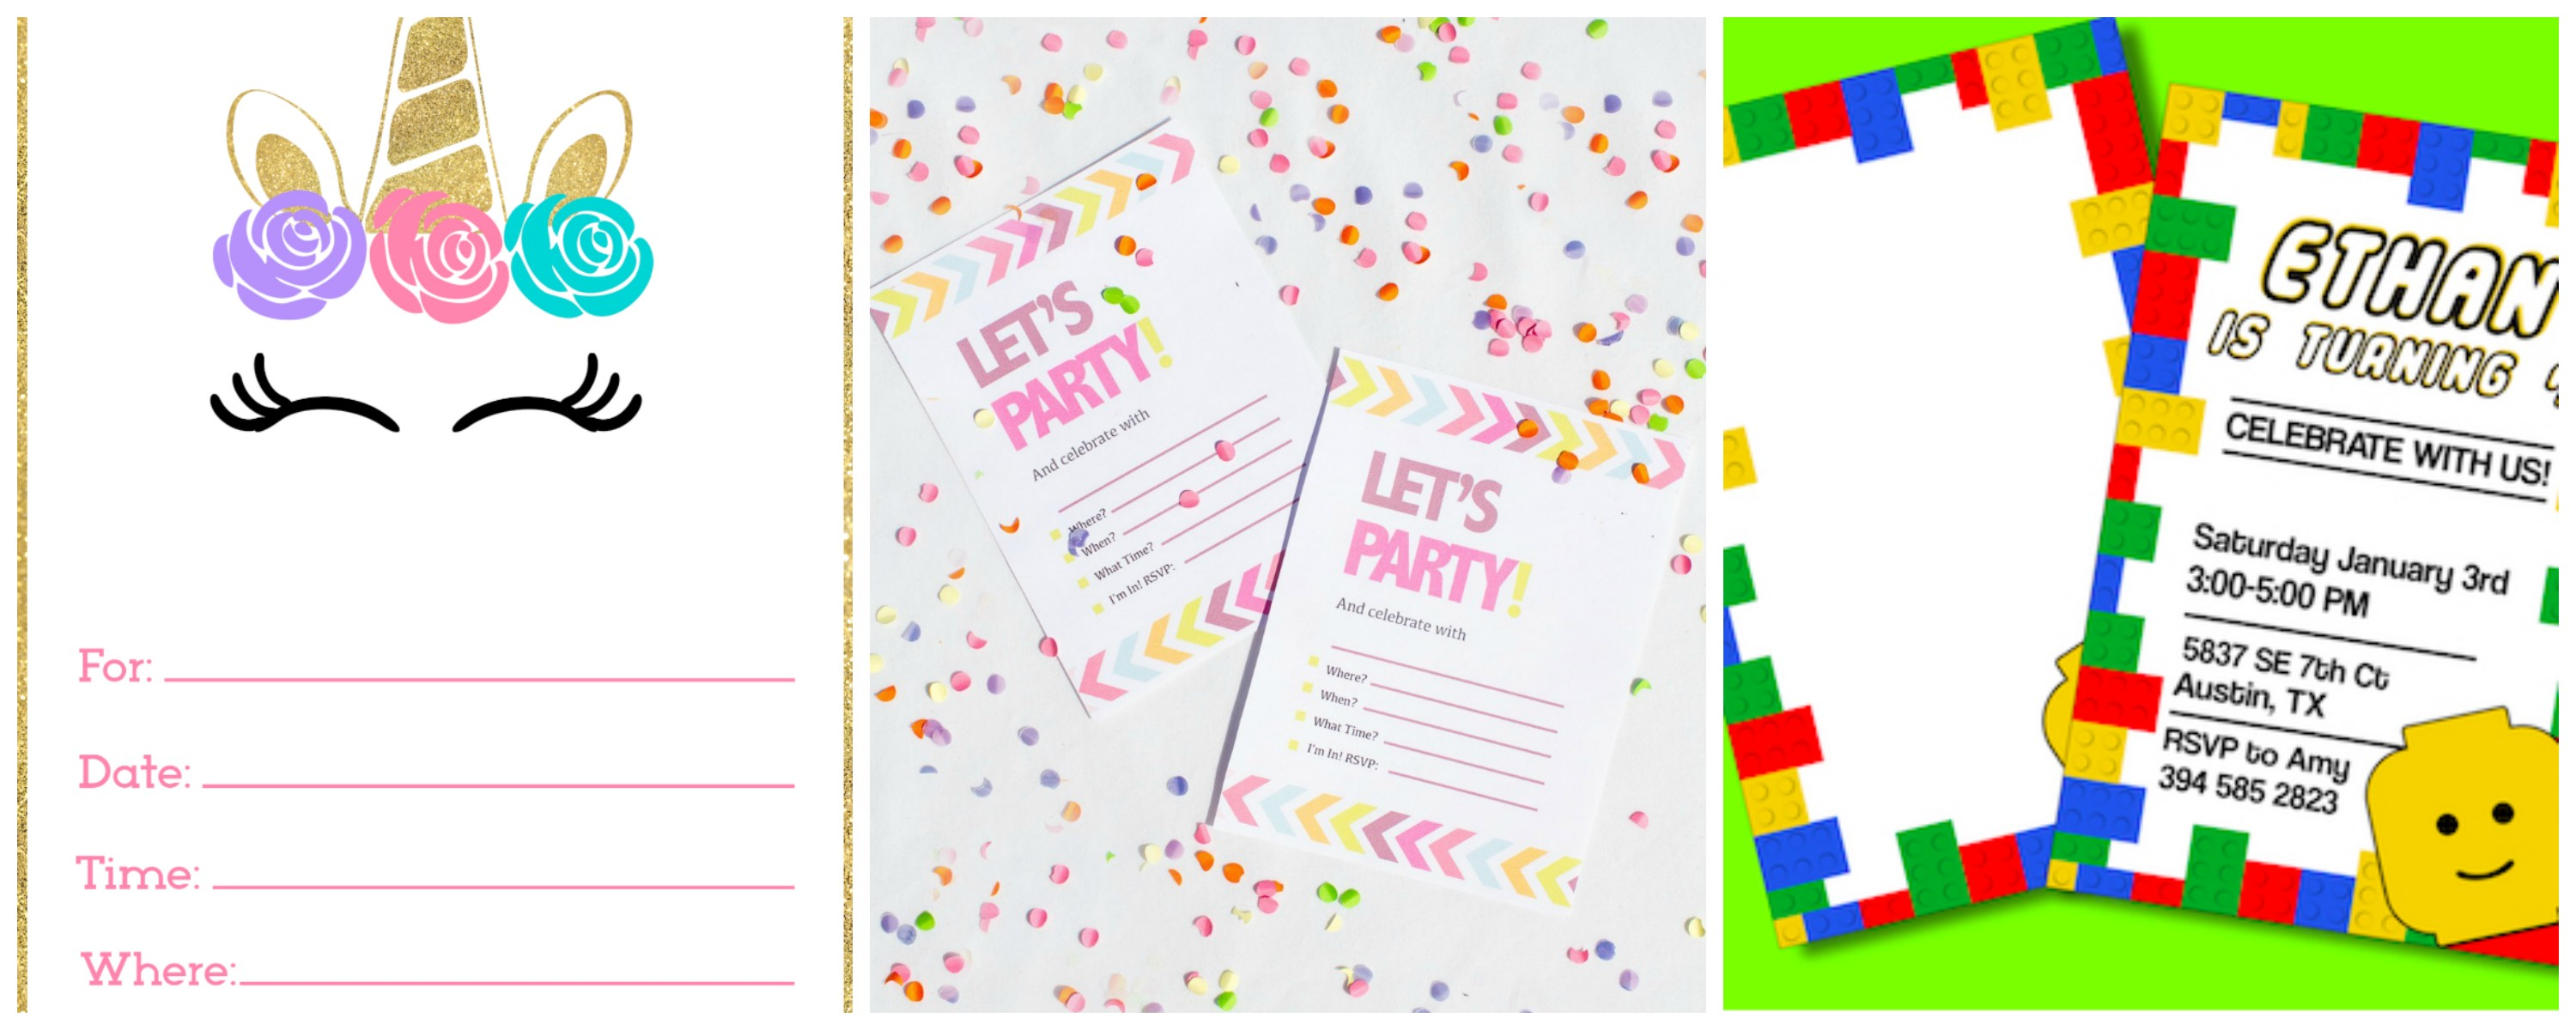 Free printable invitations for birthday parties